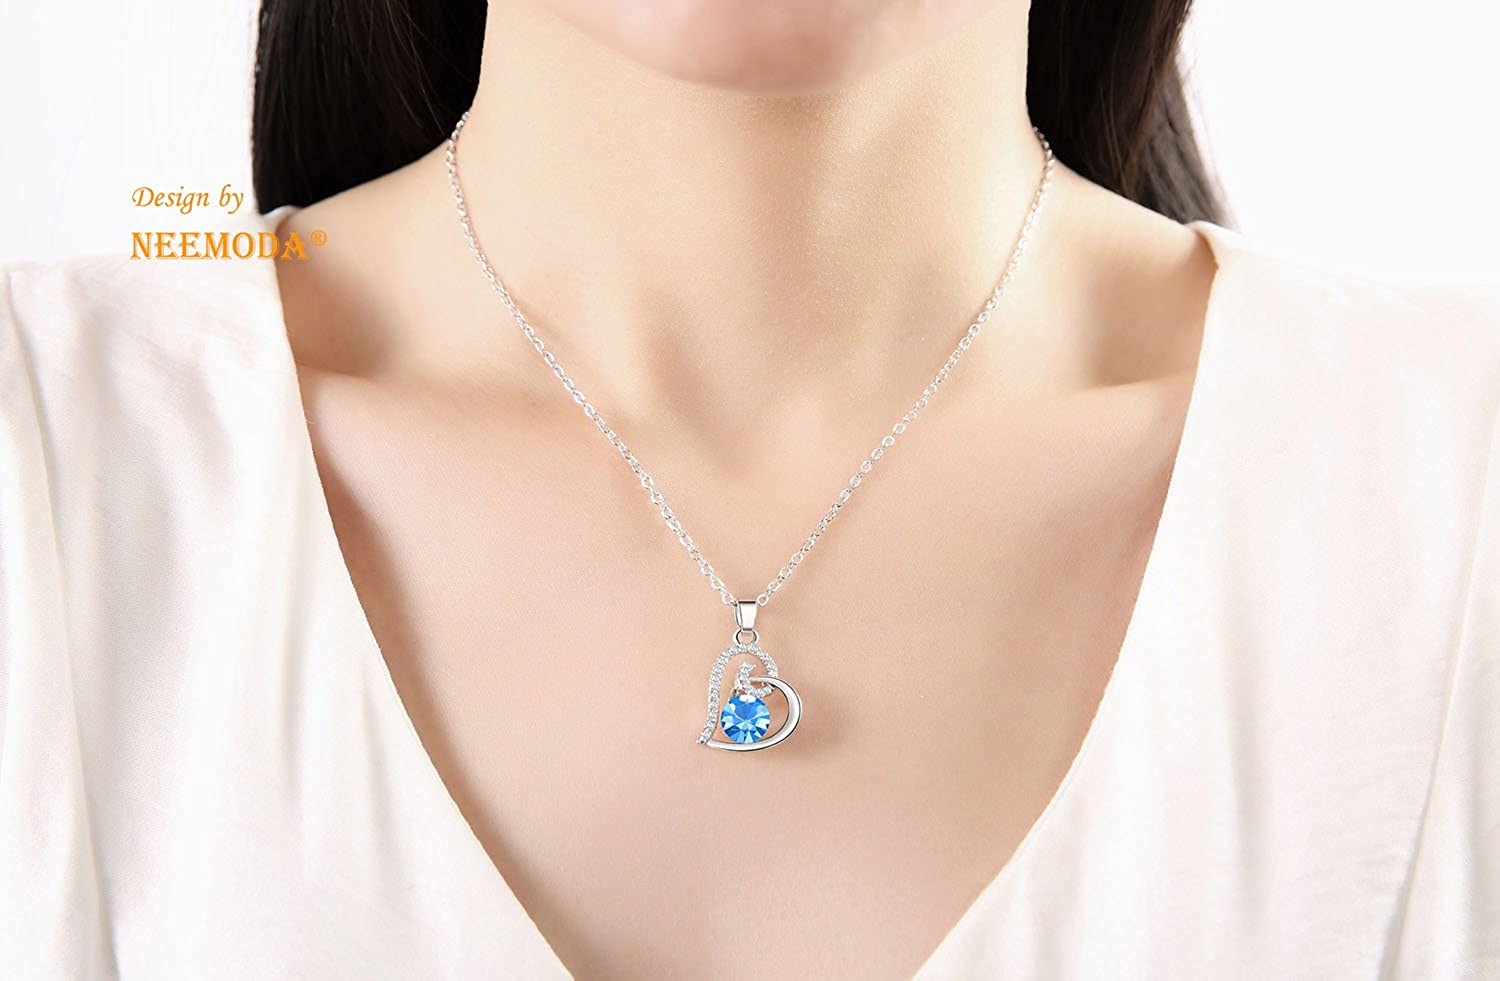 NEEMODA Eternal Love Luxury Austrian Crystal Necklace with Gift Box, 18 inches + 2 inches Chain